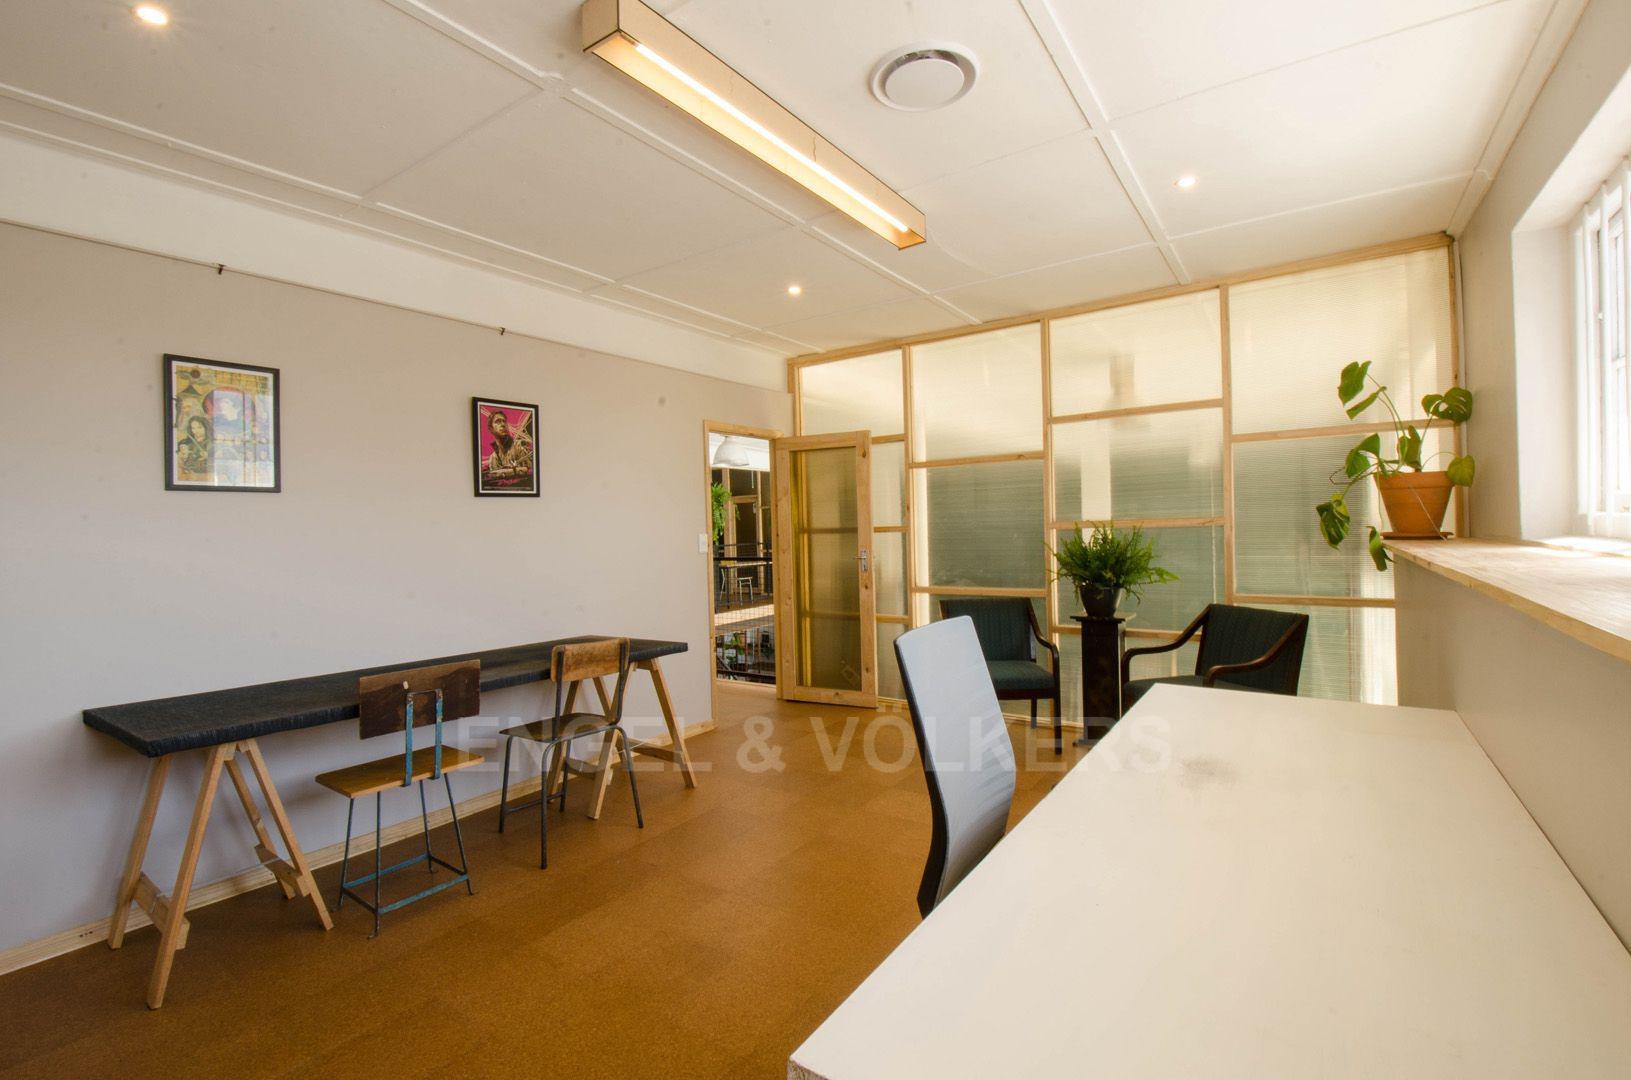 Office in Woodstock - Furnished Large Office